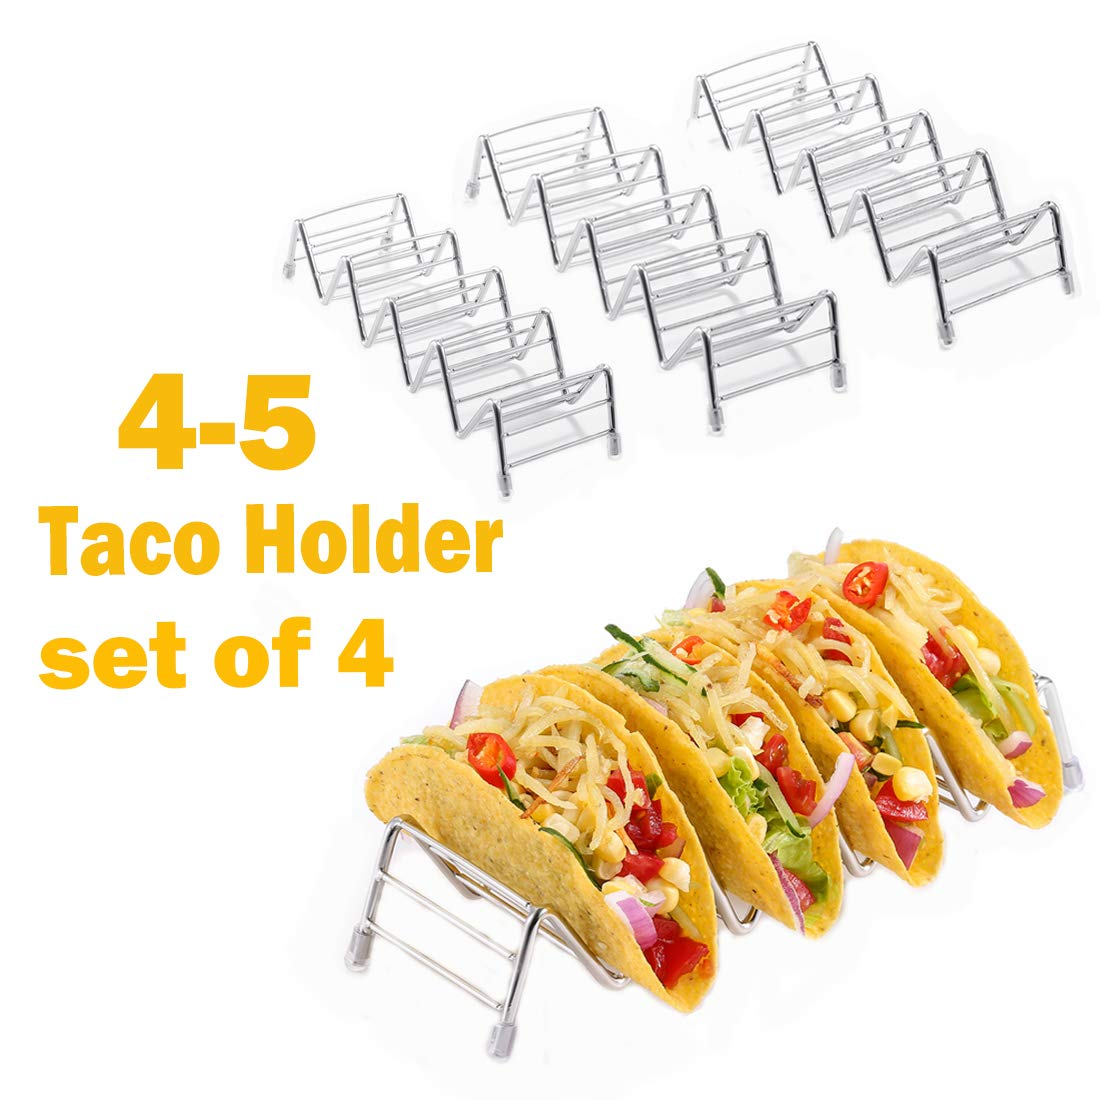 Taco Holder, 4-5 Taco Rack Holders, Good Holder Stand on Table, Hold 4 or 5 Hard or Soft Shell Taco, Safe for Baking as Truck Tray- Set of 4 (4-5 taco/ 4 pack)